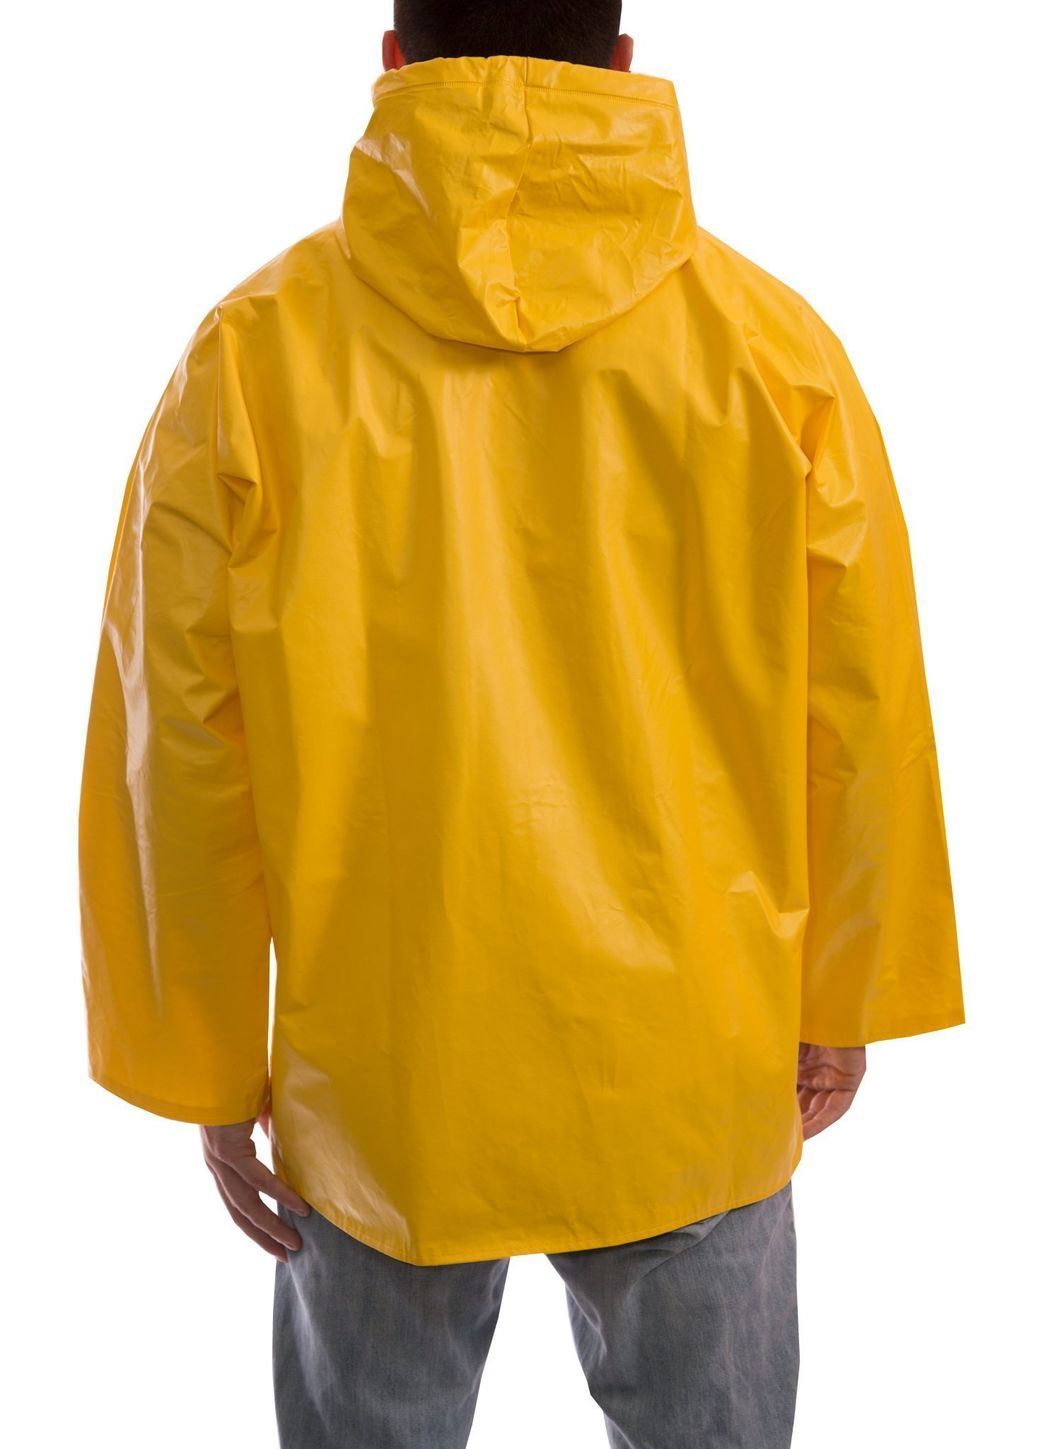 Tingley J32107 PVC Coated Work Jacket - with Attached Hood Back